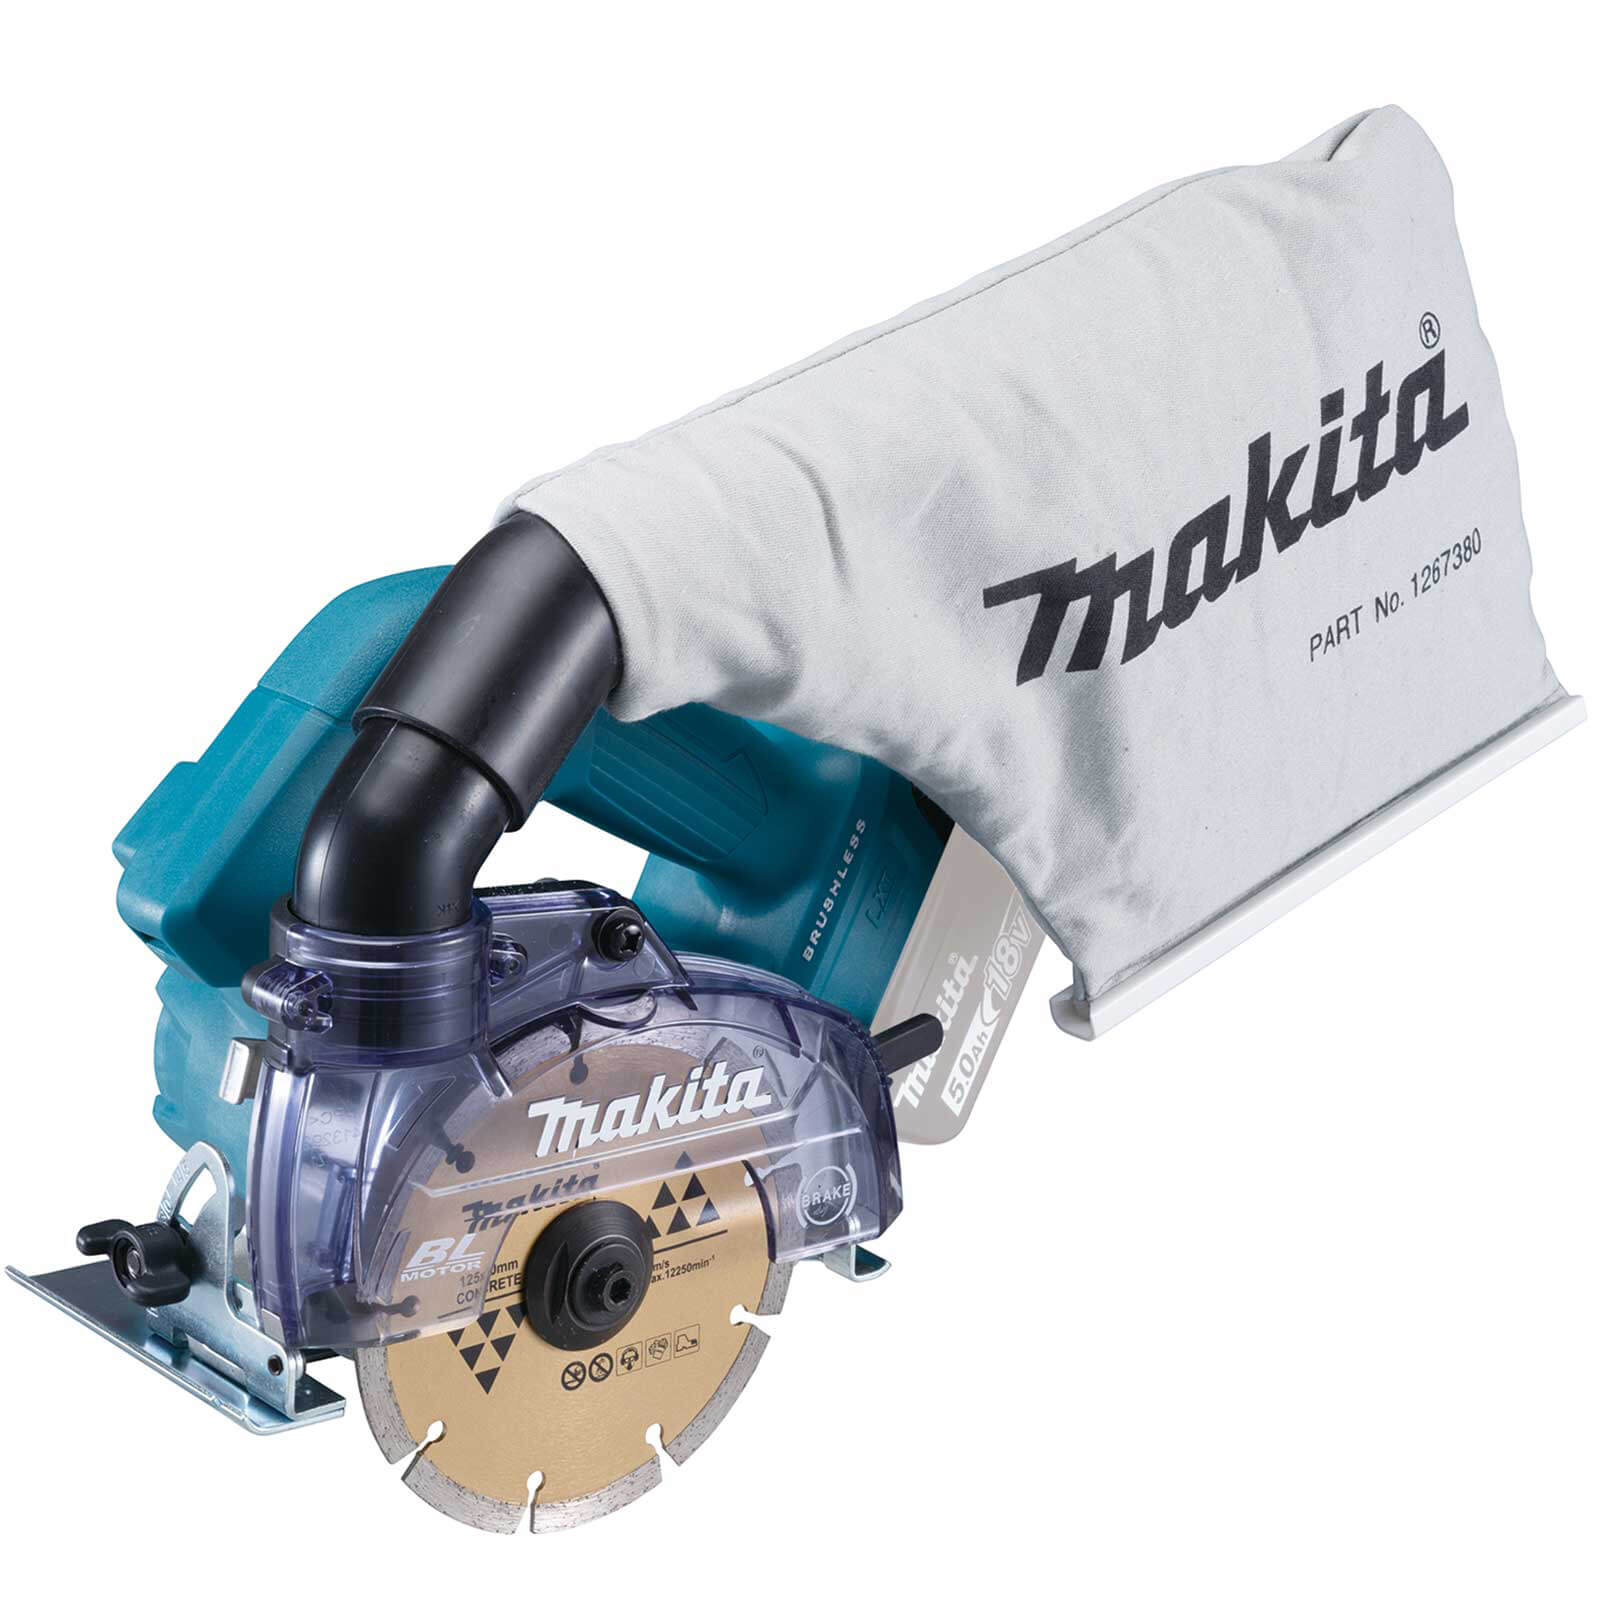 Makita DCC500 18v LXT Cordless Brushless Disc Cutter 125mm No Batteries No Charger No Case